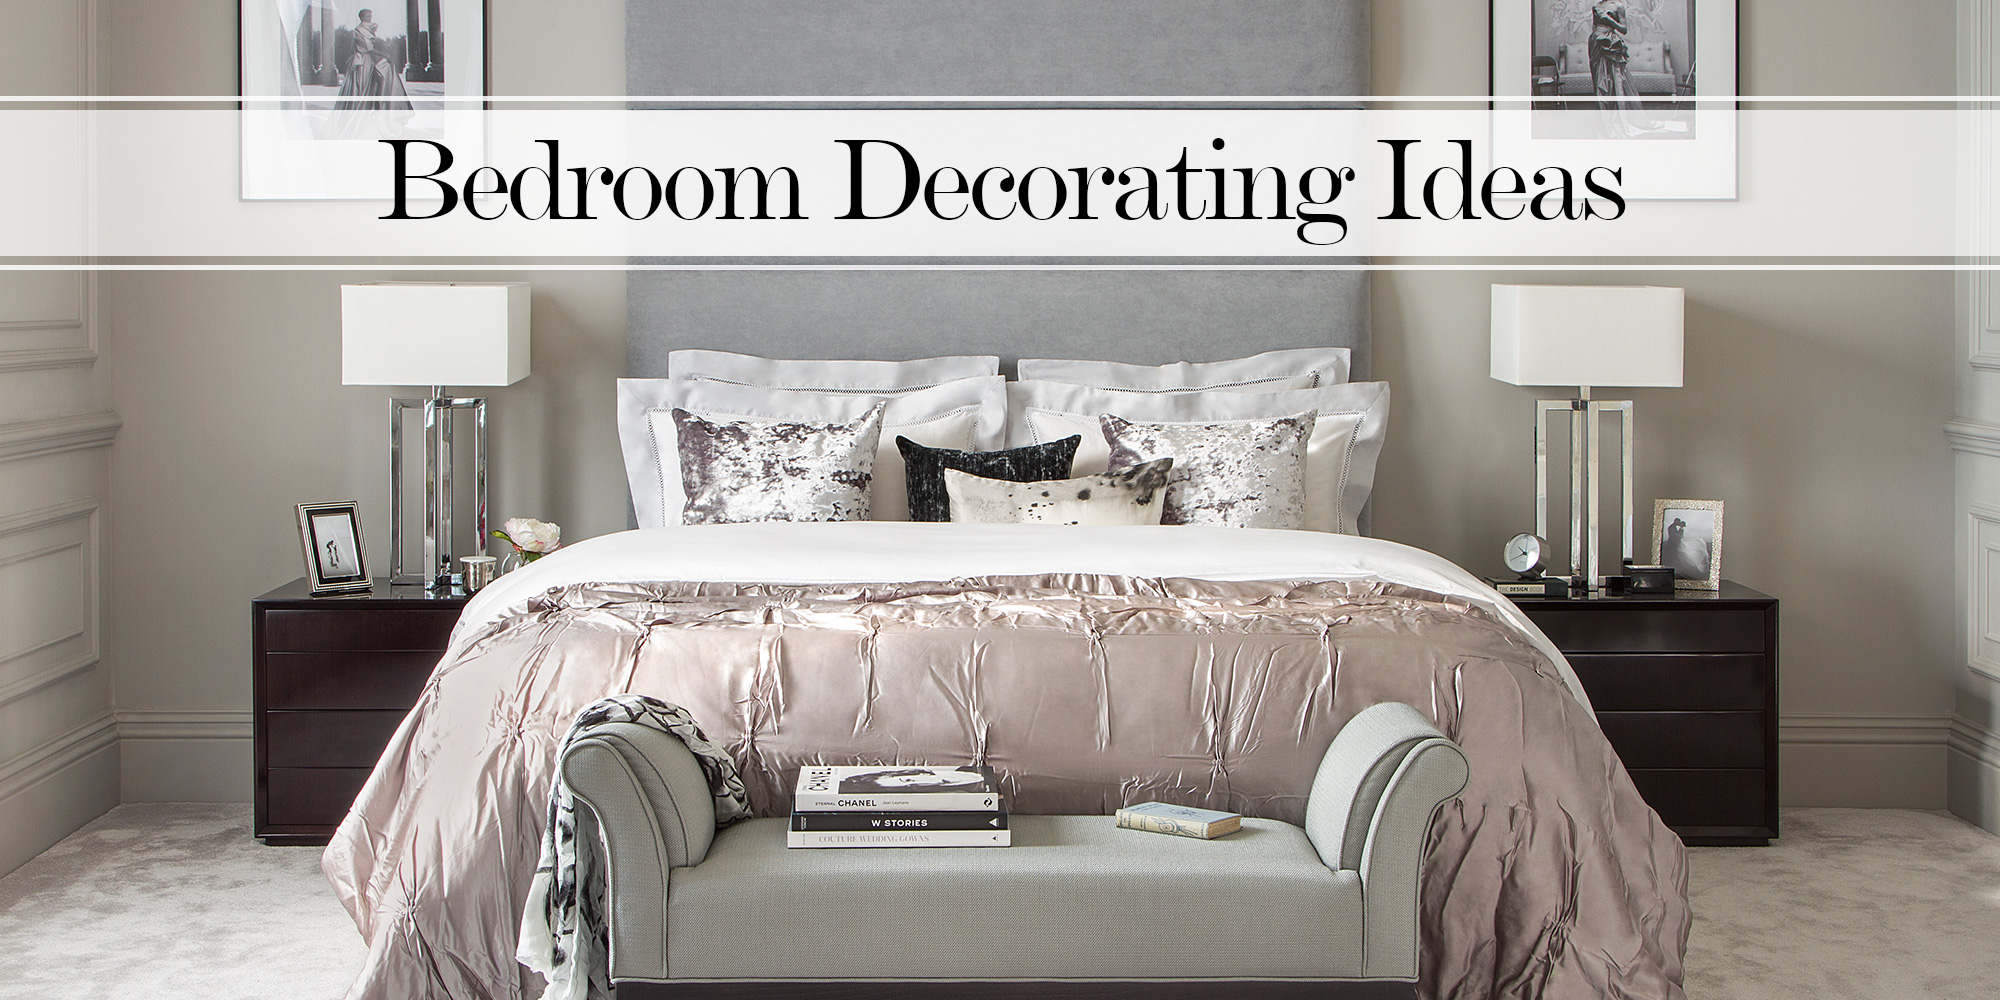 Bedroom Ideas  51 Modern Design Ideas For Your Bedroom. Bedroom Ideas  51 Modern Design Ideas For Your Bedroom   The